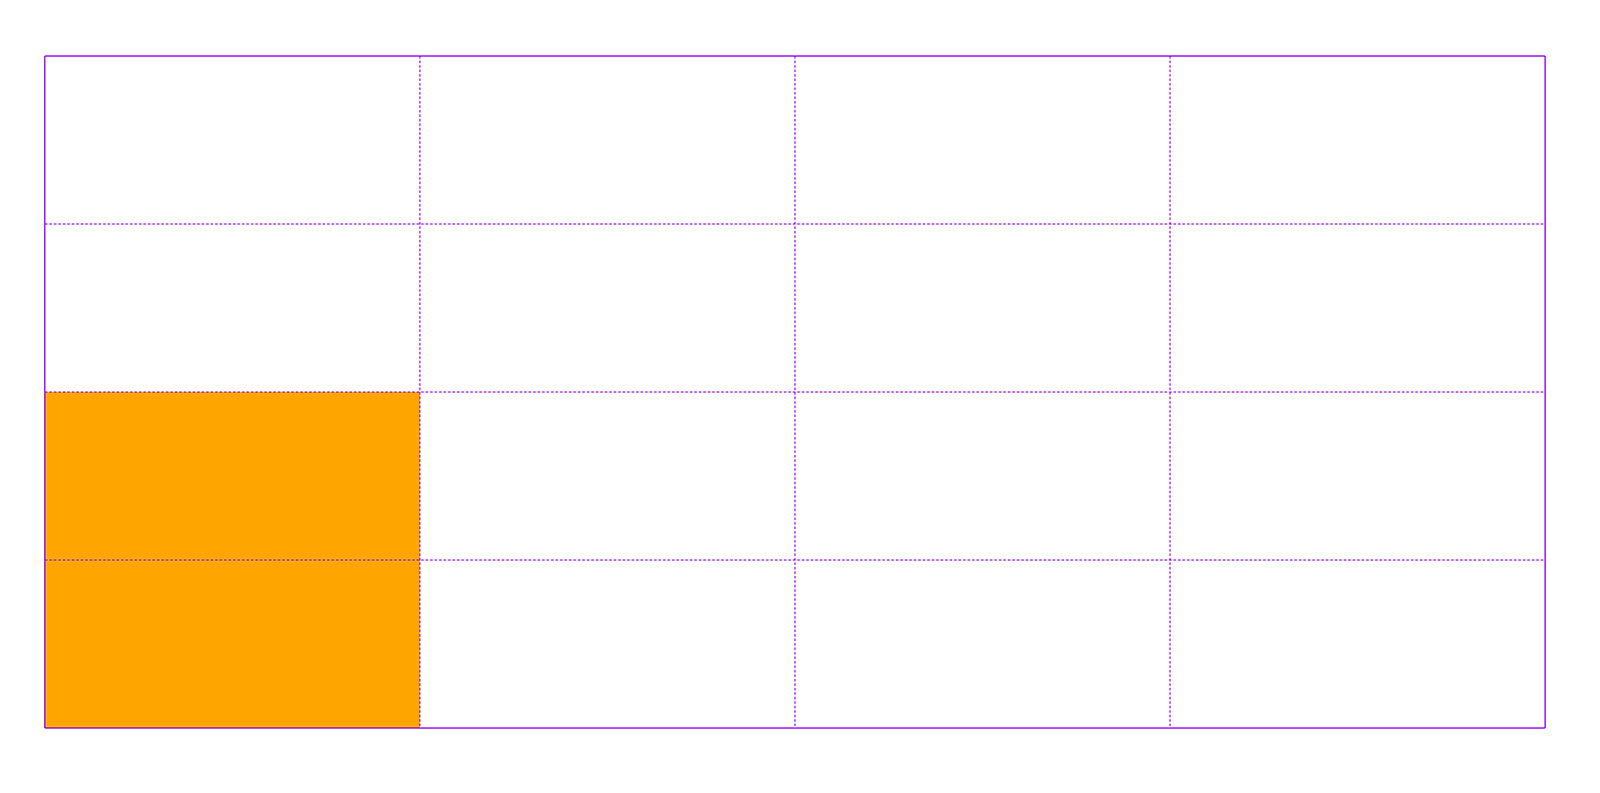 Orange grid item placed at the bottom left of the grid